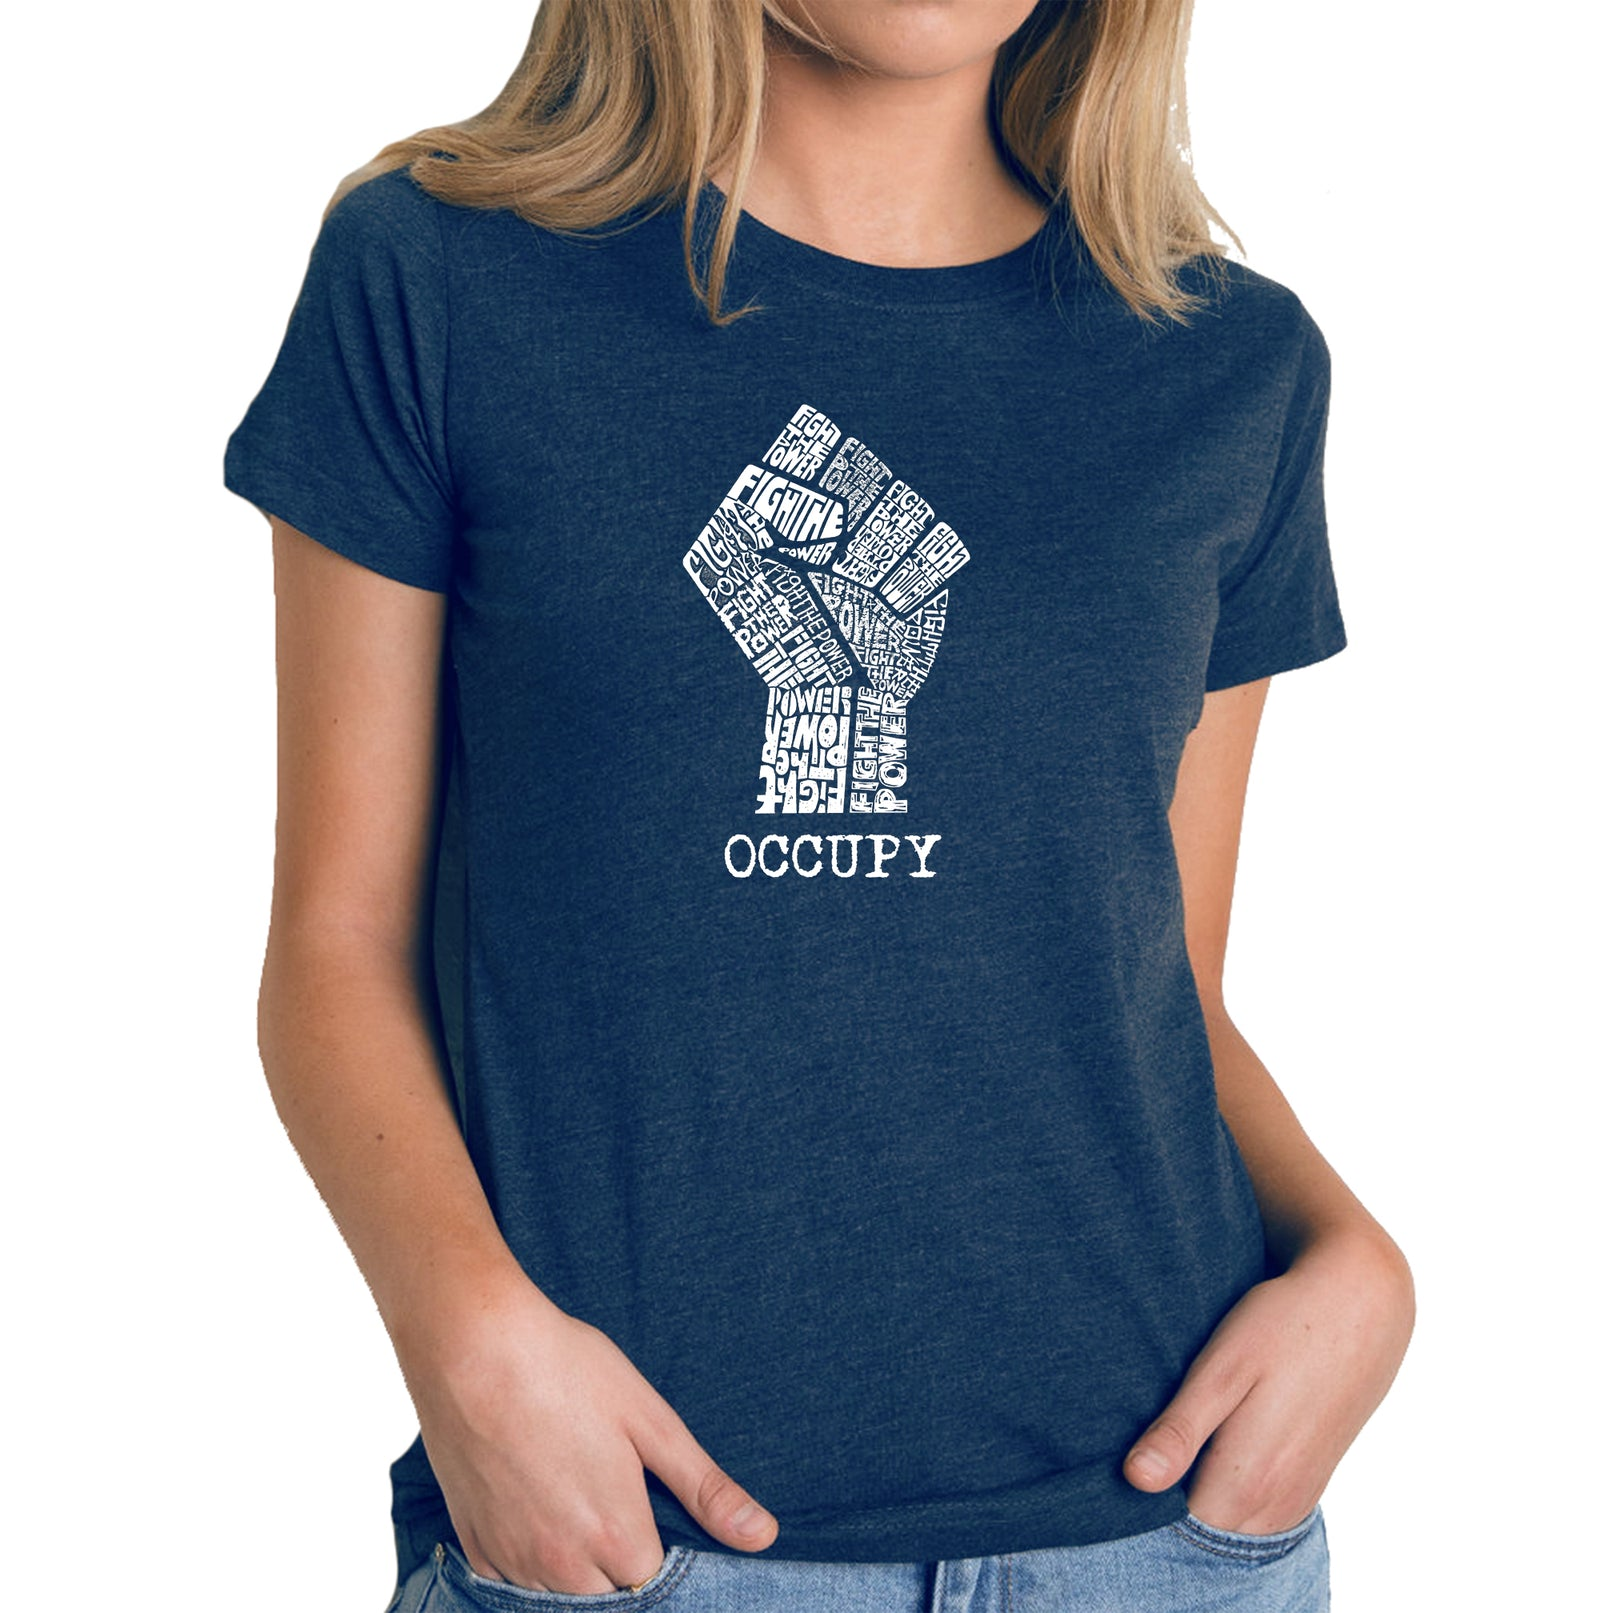 Women's Premium Blend Word Art T-shirt - OCCUPY WALL STREET - FIGHT THE POWER